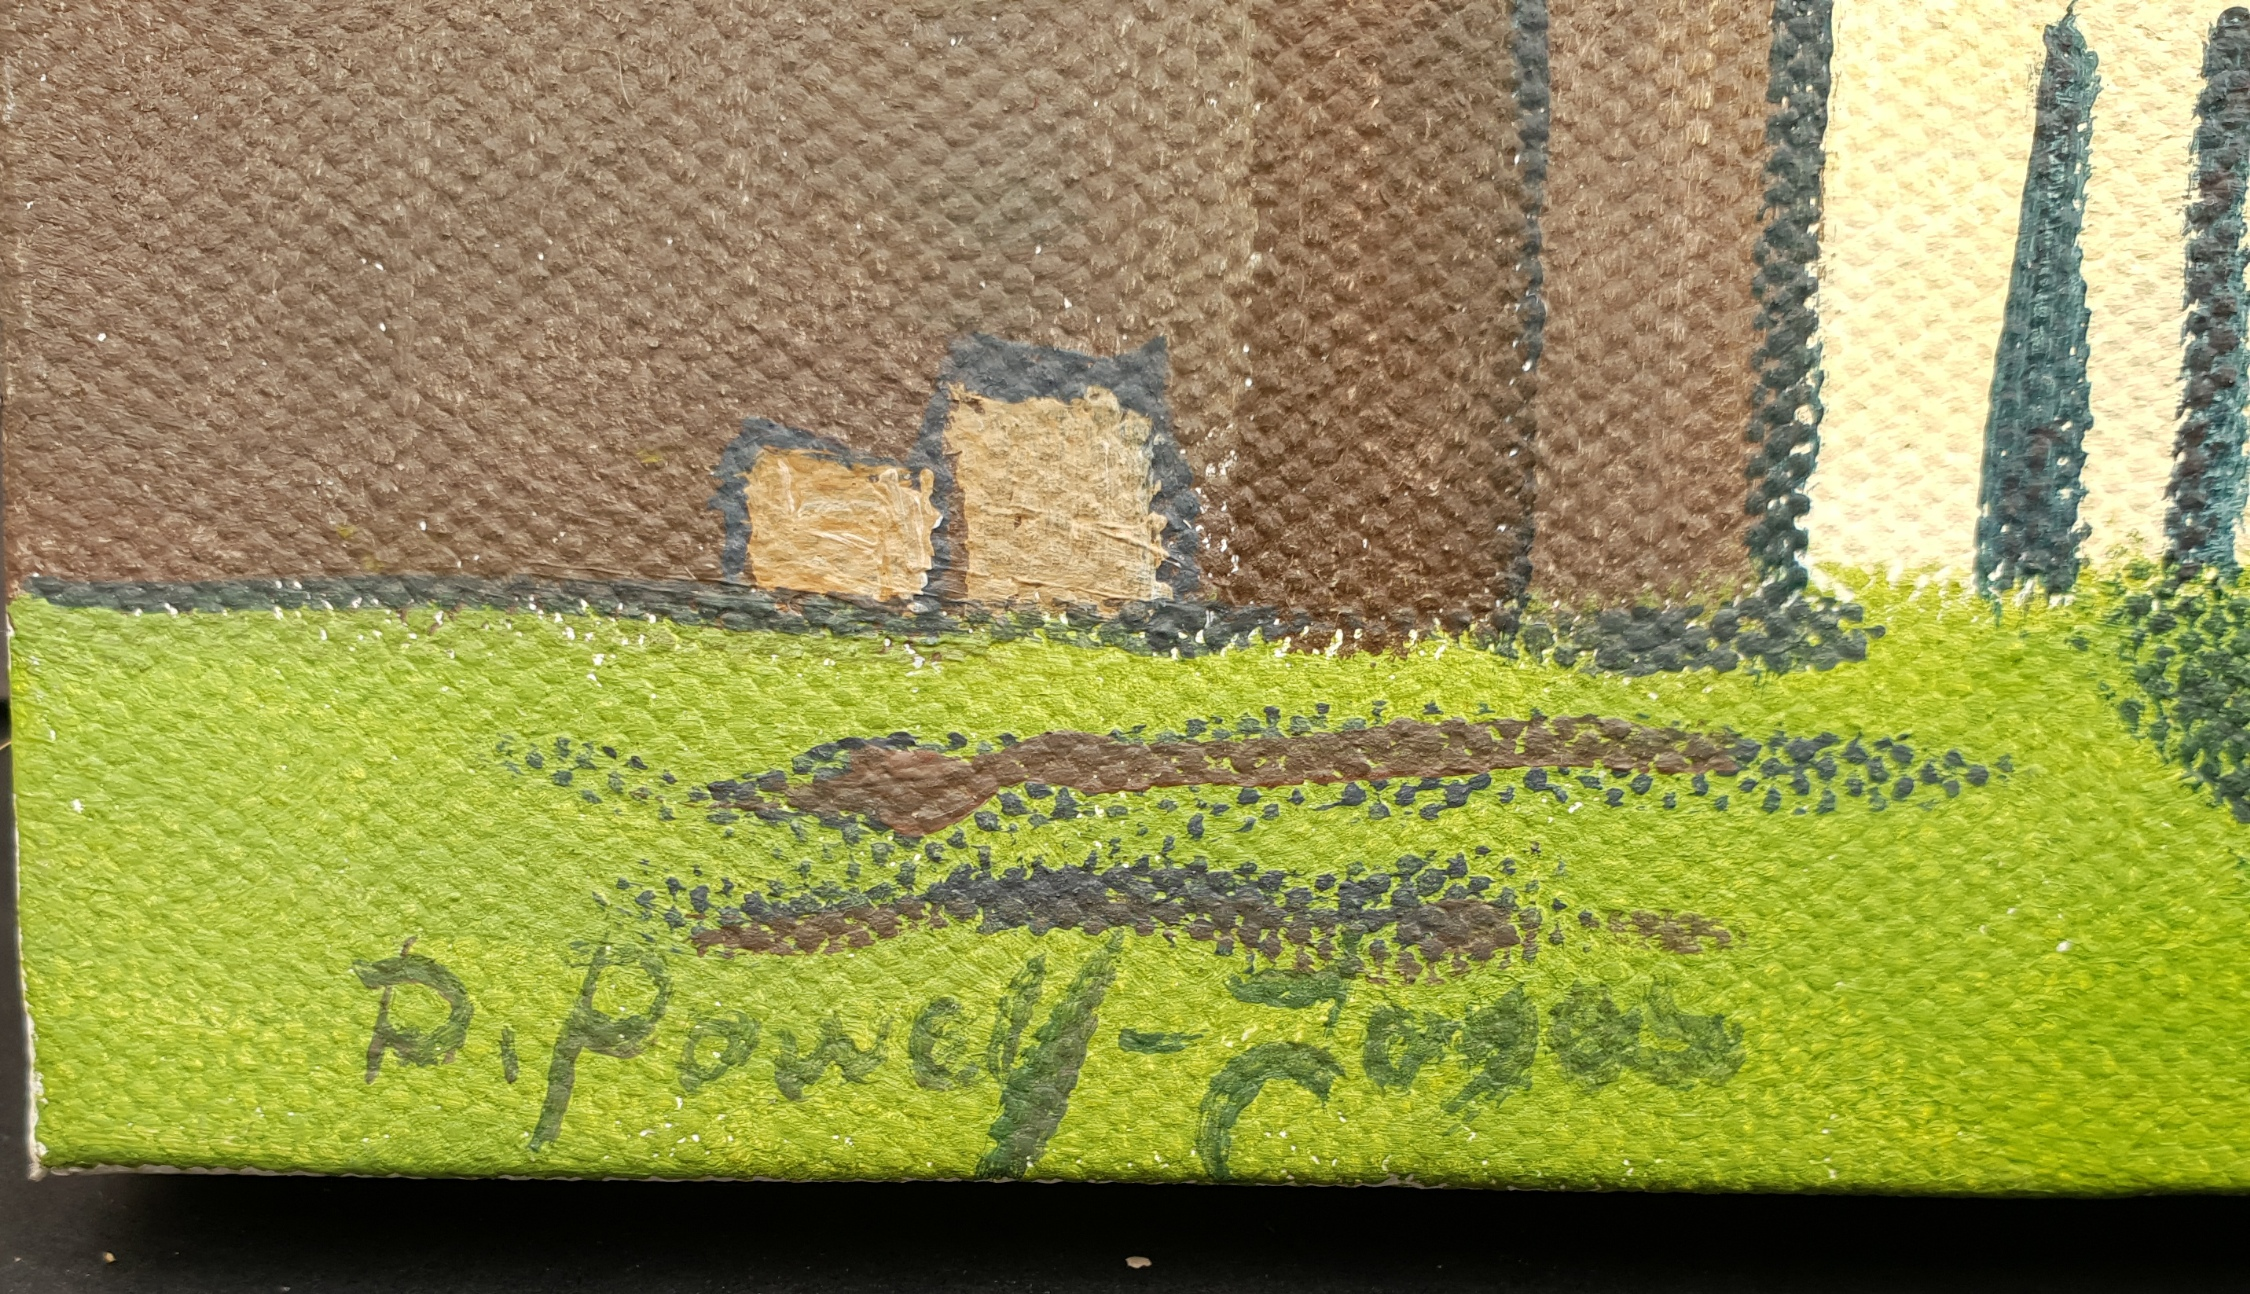 Vintage Art Painting Oil On Canvas After L. S. Lowry Coming From The Mill. - Image 2 of 4